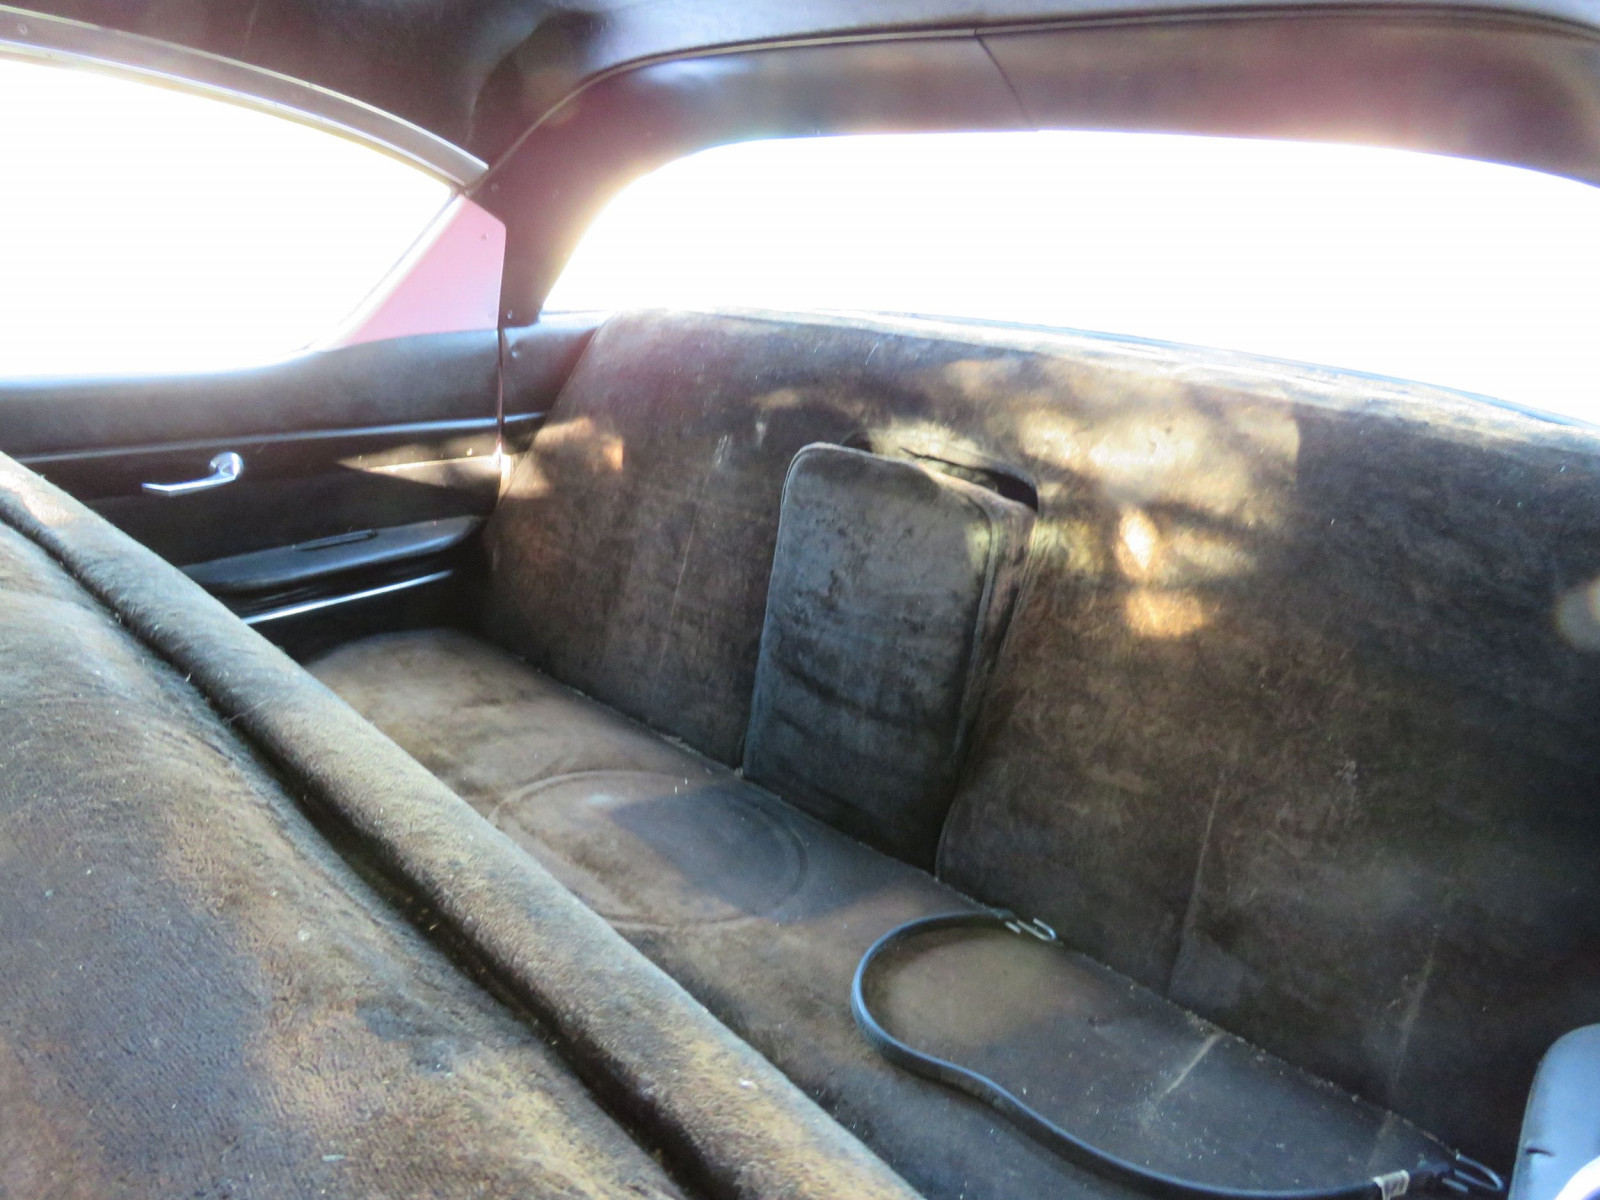 1957 Series 62 Cadillac 4dr Hard Top - Image 9